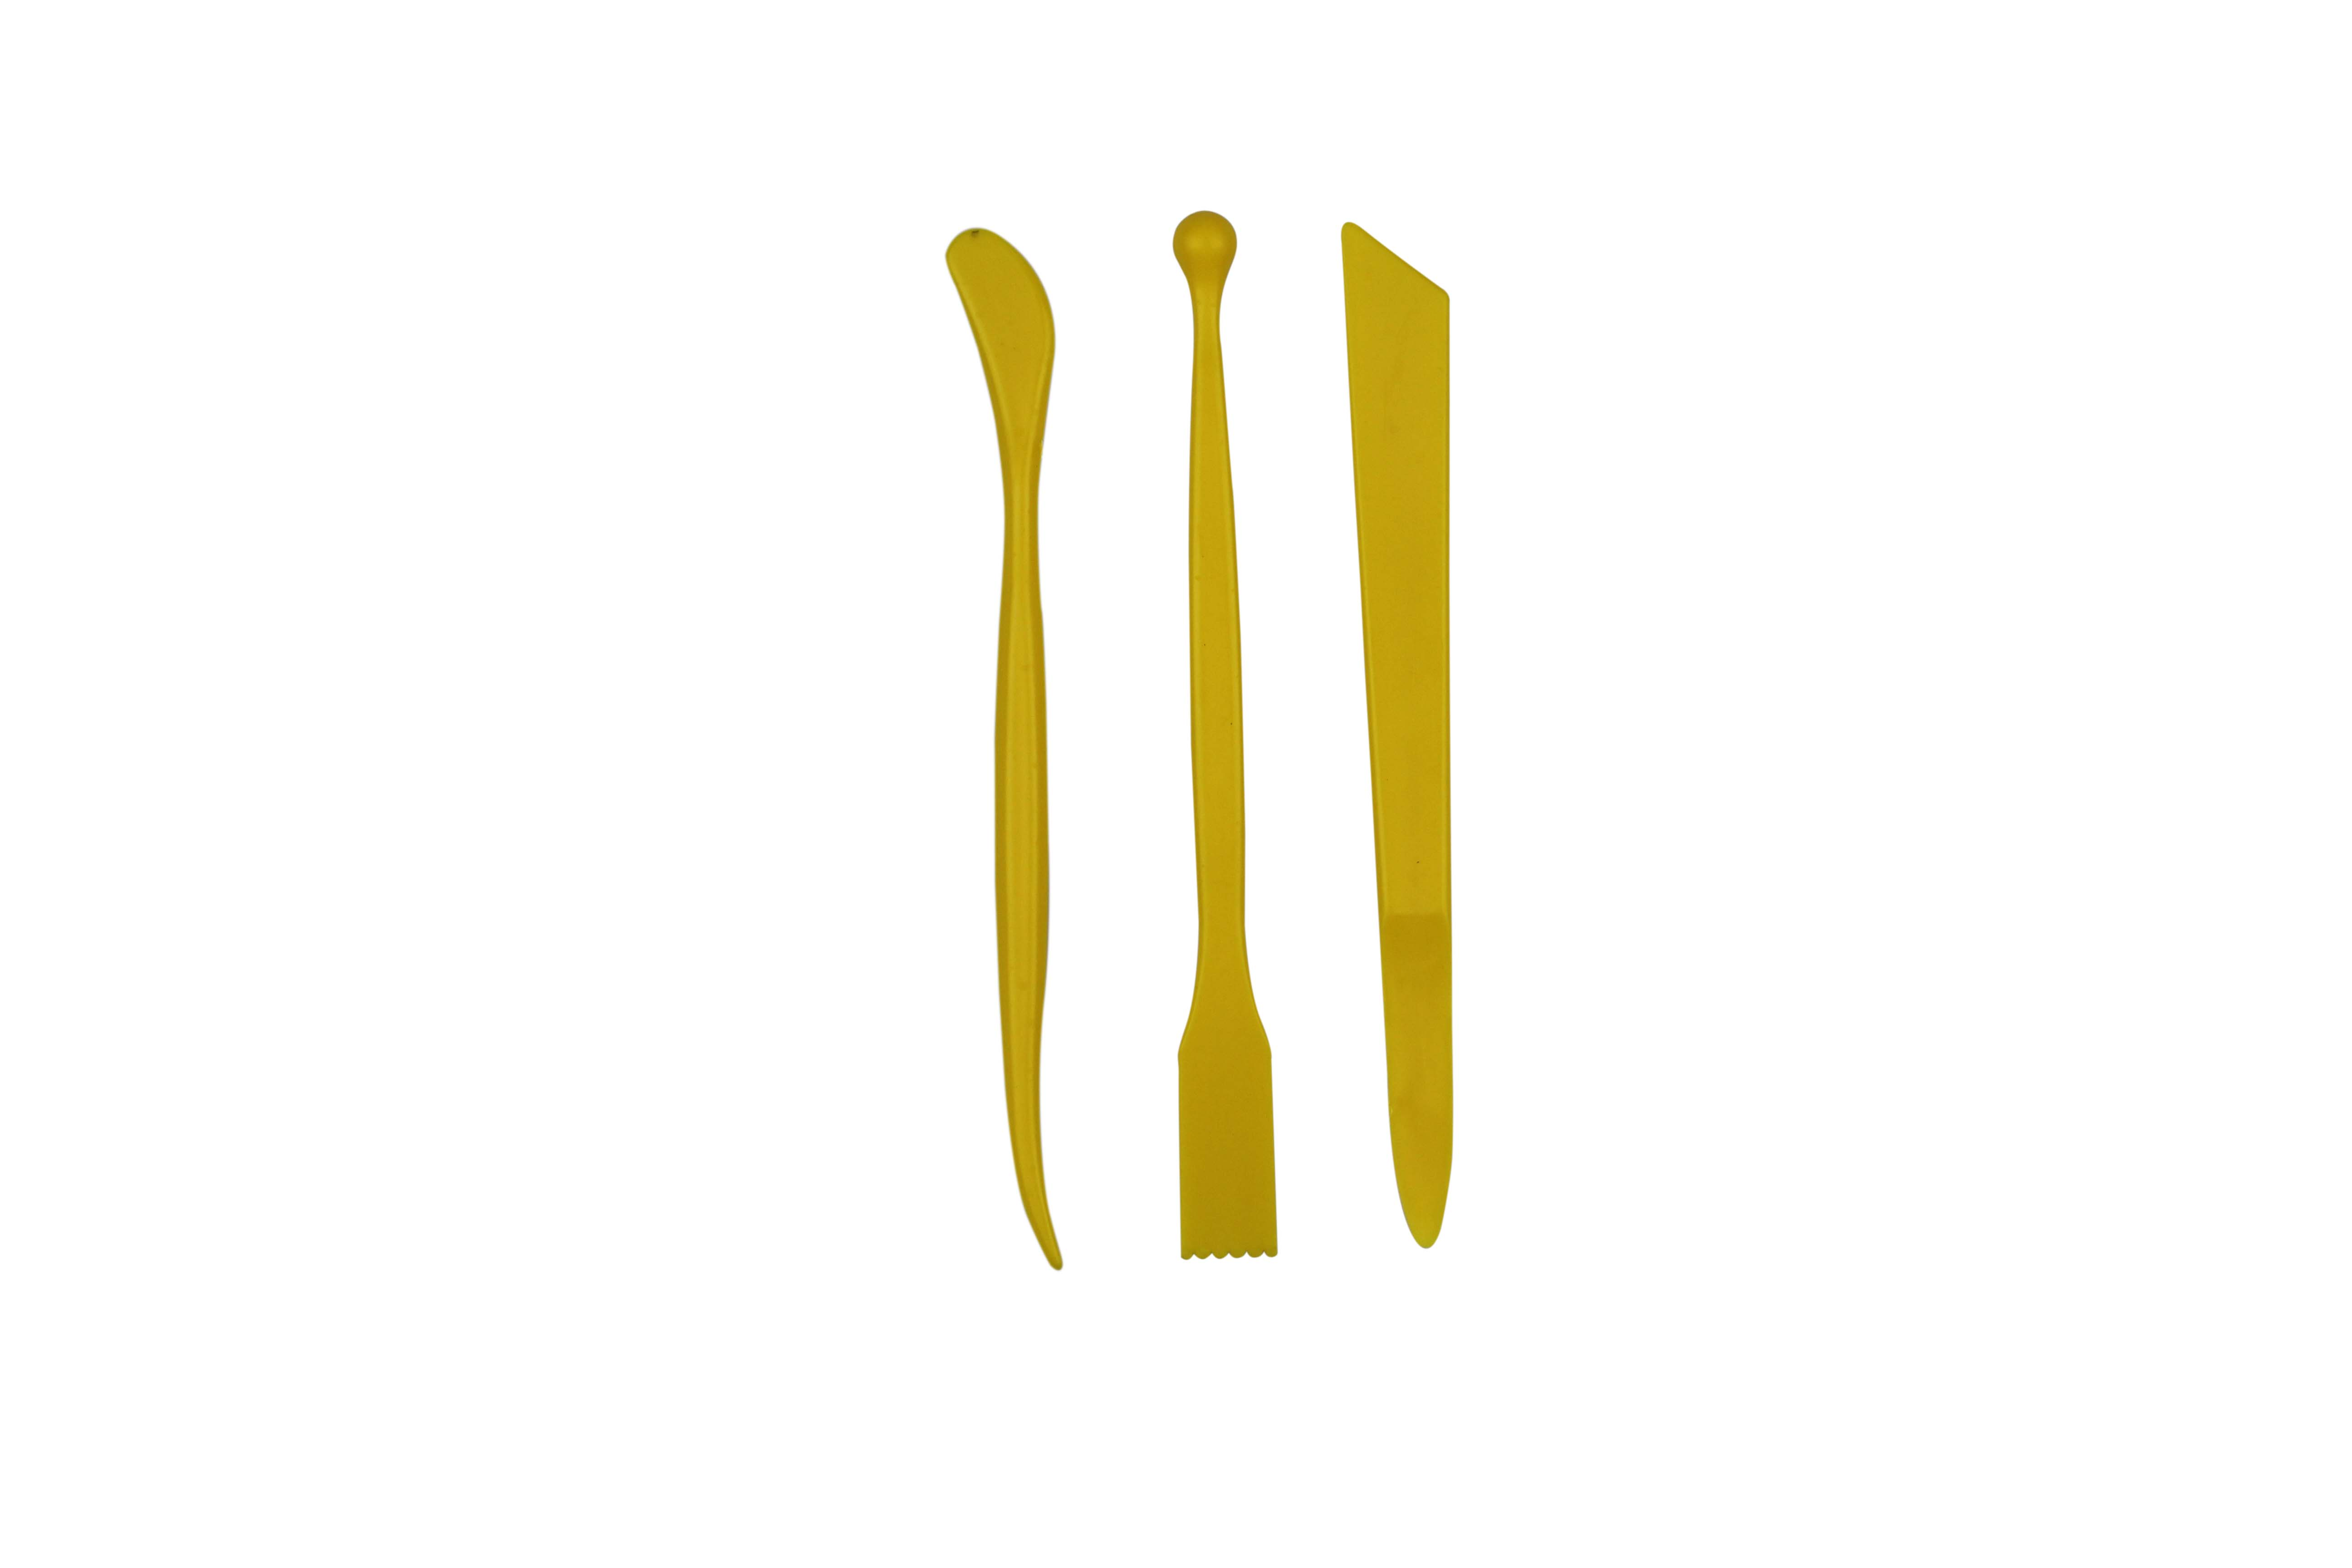 18cm Durable Yellow Modeling Tool Set for Cutting, Carving and Smoothing